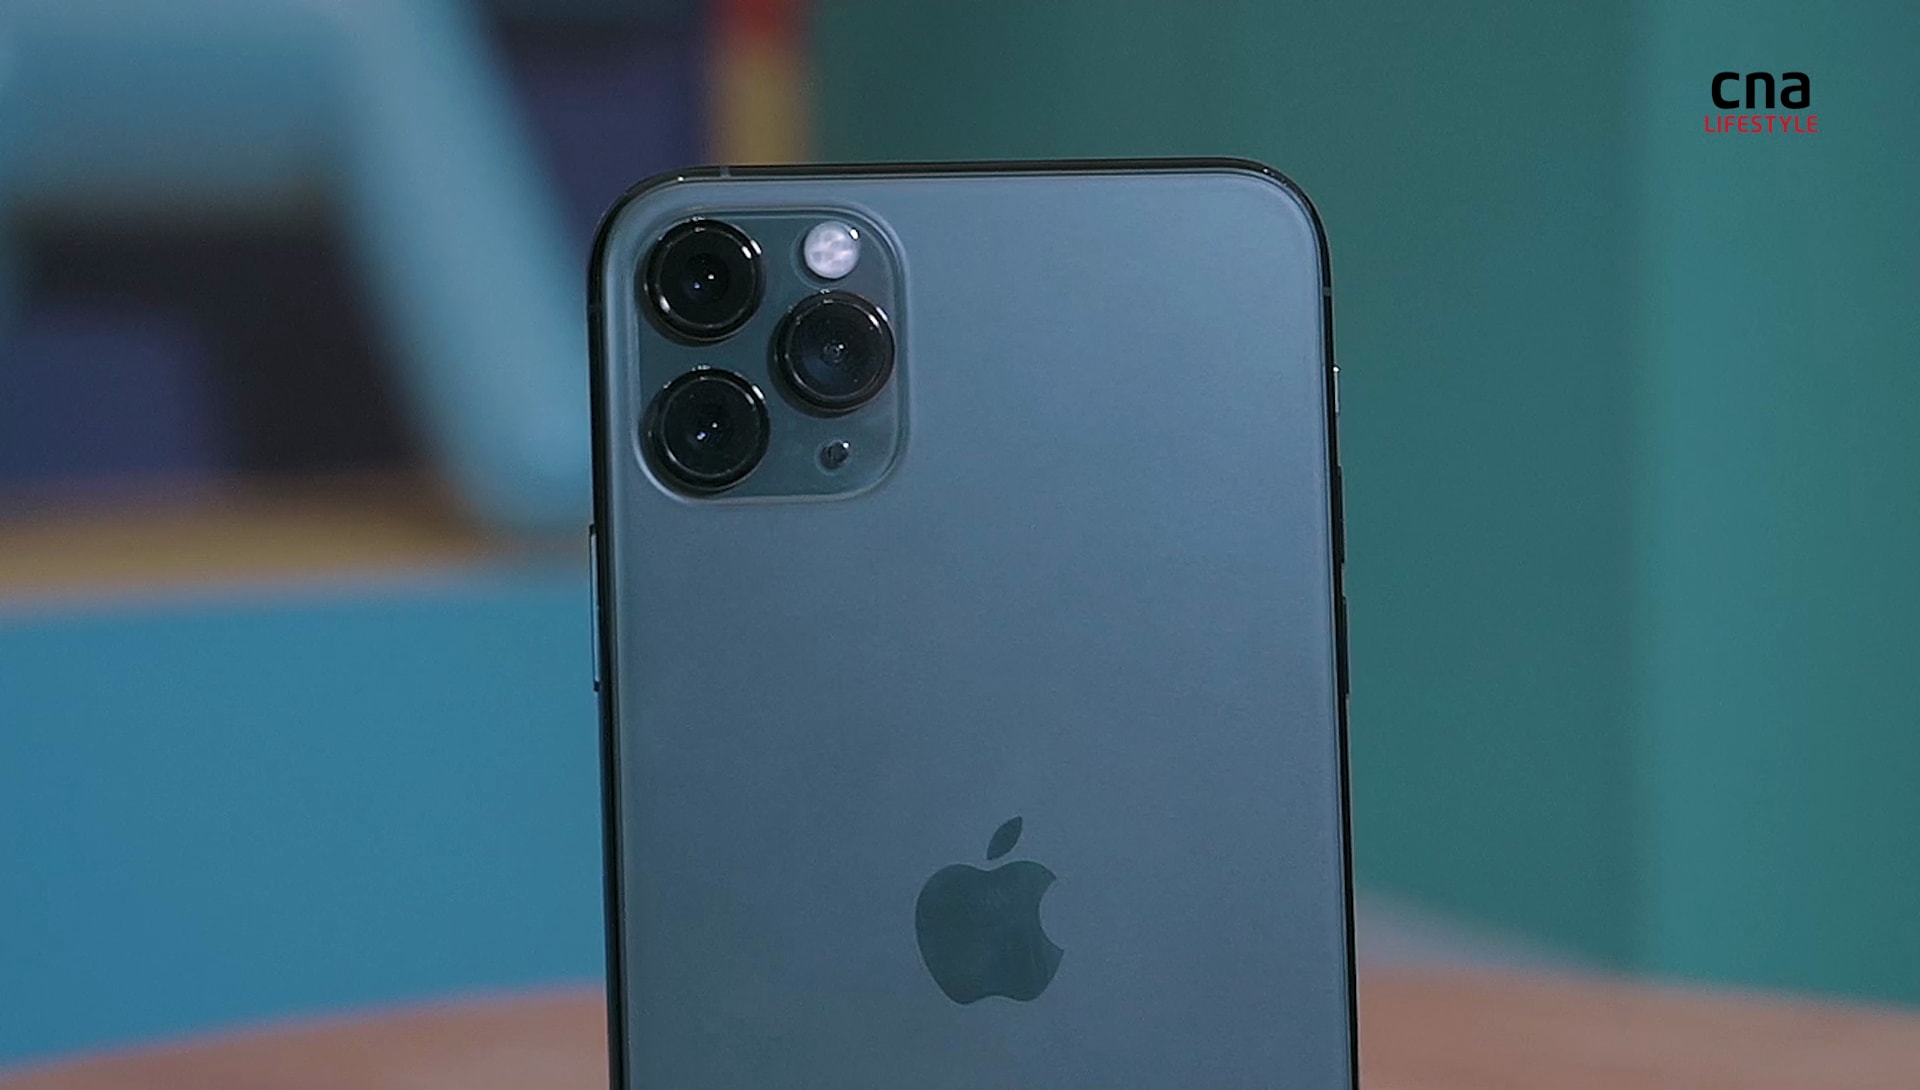 iPhone 11 Pro Max hands-on: Slowfie, ultra-wide lens, bright display | CNA Lifestyle